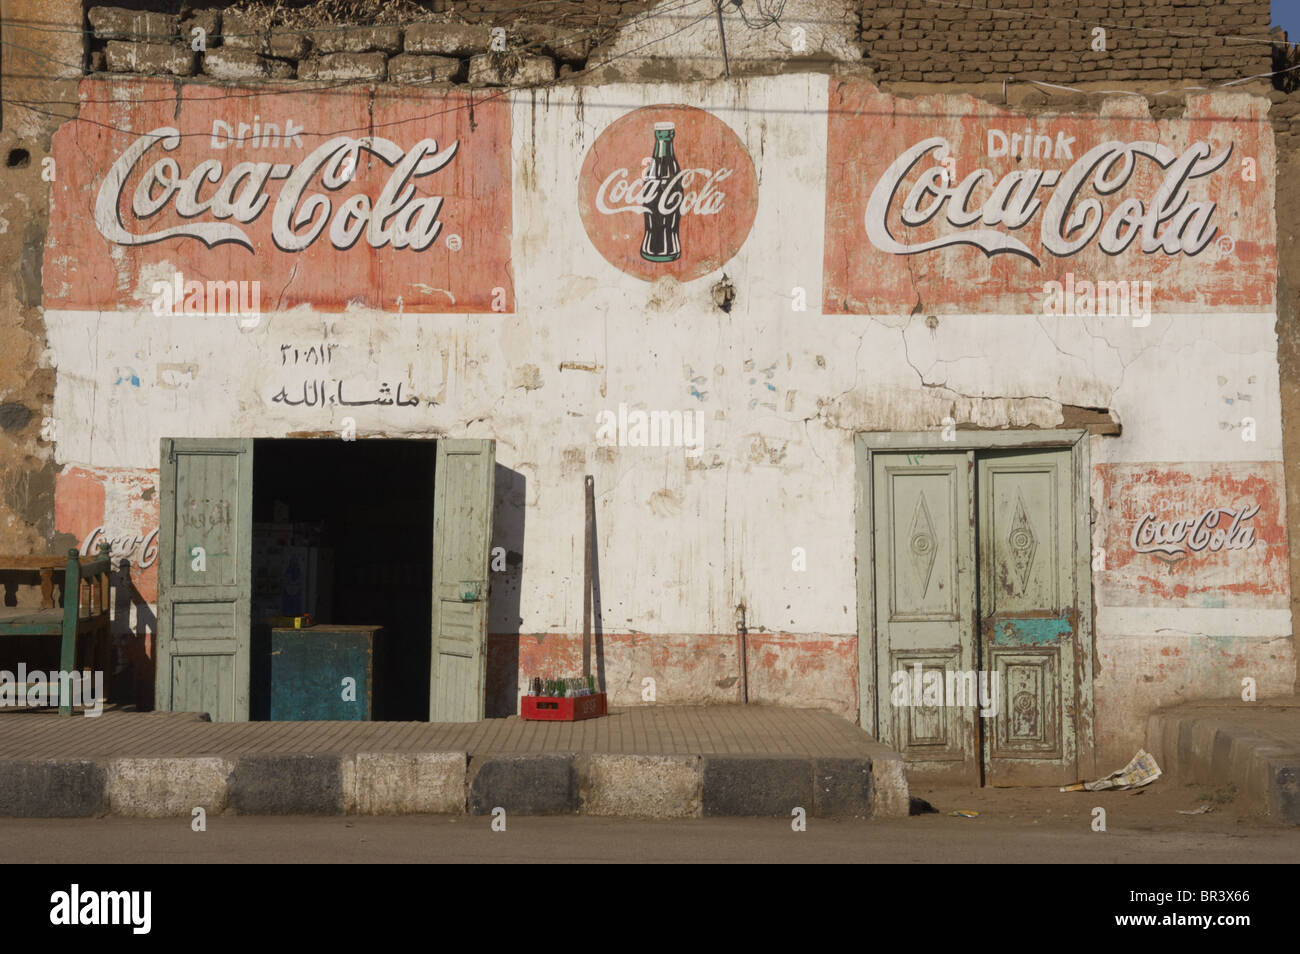 Facade of a building with Coca-Cola advertising. Luxor. Egypt. - Stock Image